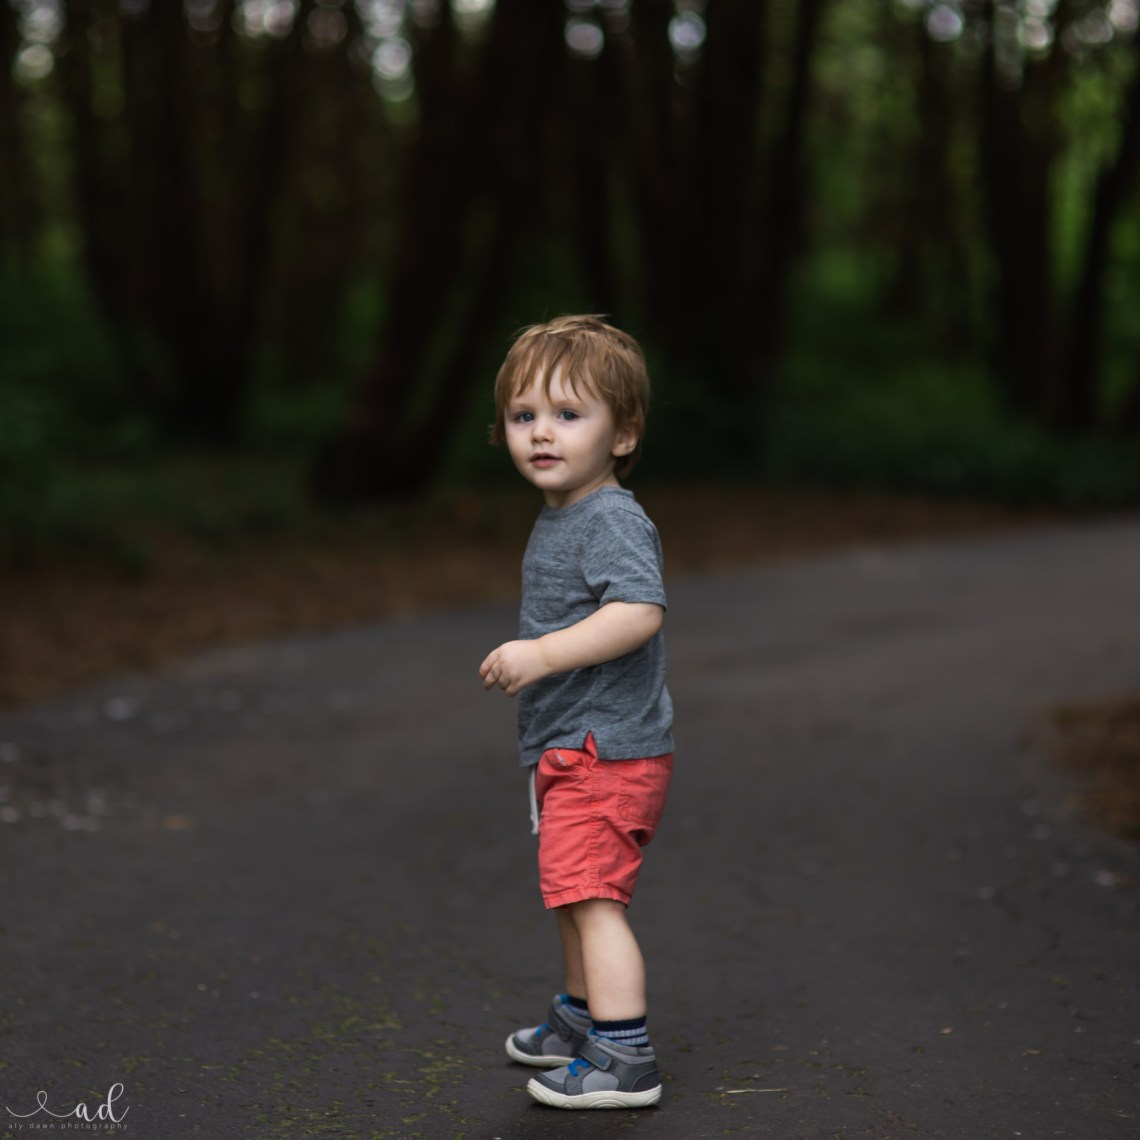 Aly Dawn Photography | Cute Toddler in Woods